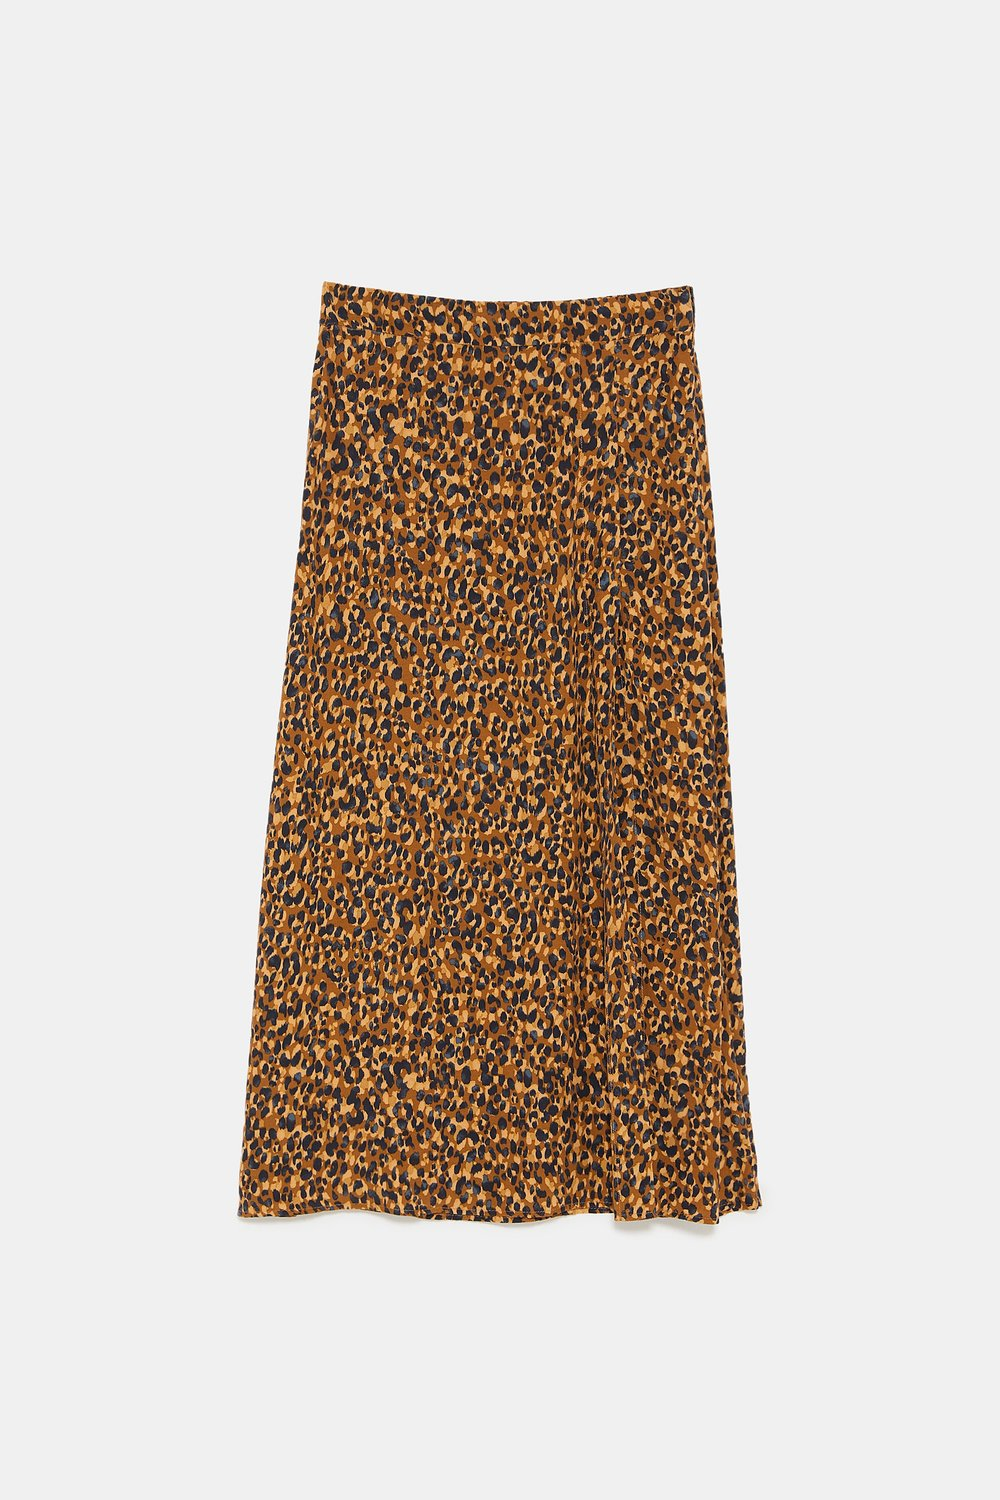 https://www.zara.com/ca/en/animal-print-skirt-p07385283.html?v1=7467547&v2=1074558